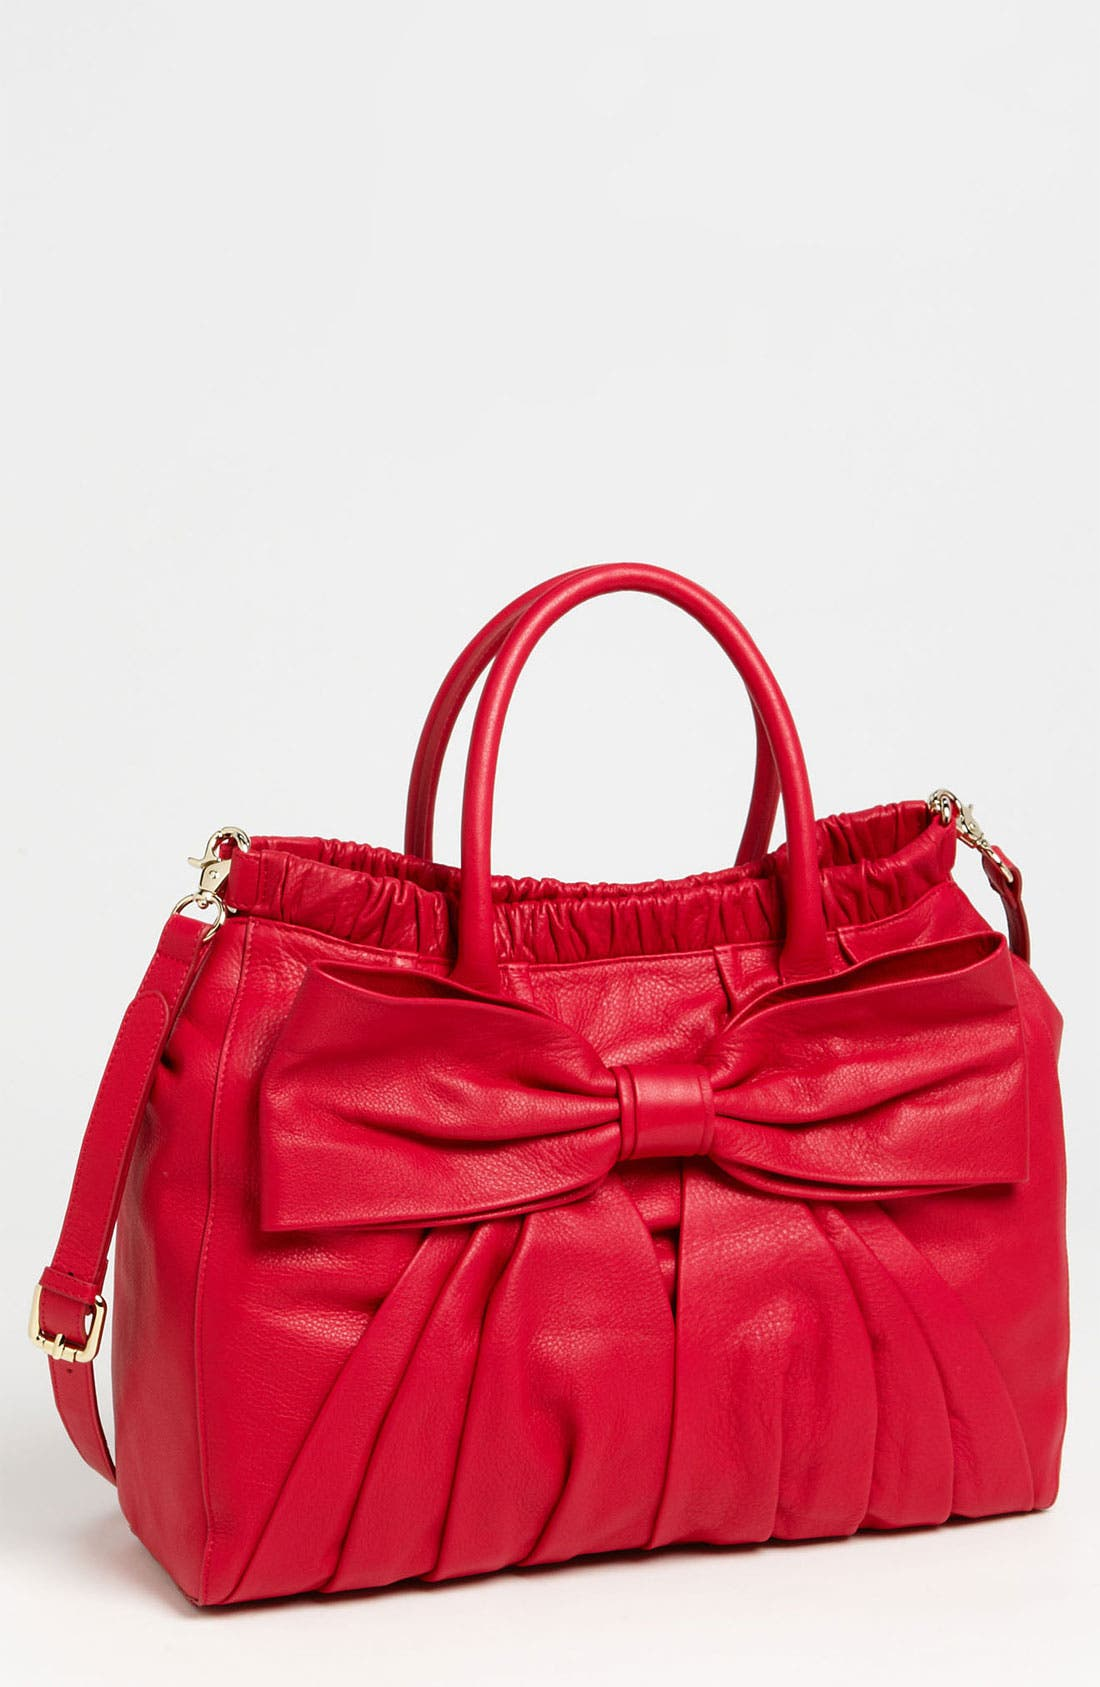 Main Image - RED Valentino 'Bow' Top Handle Bag